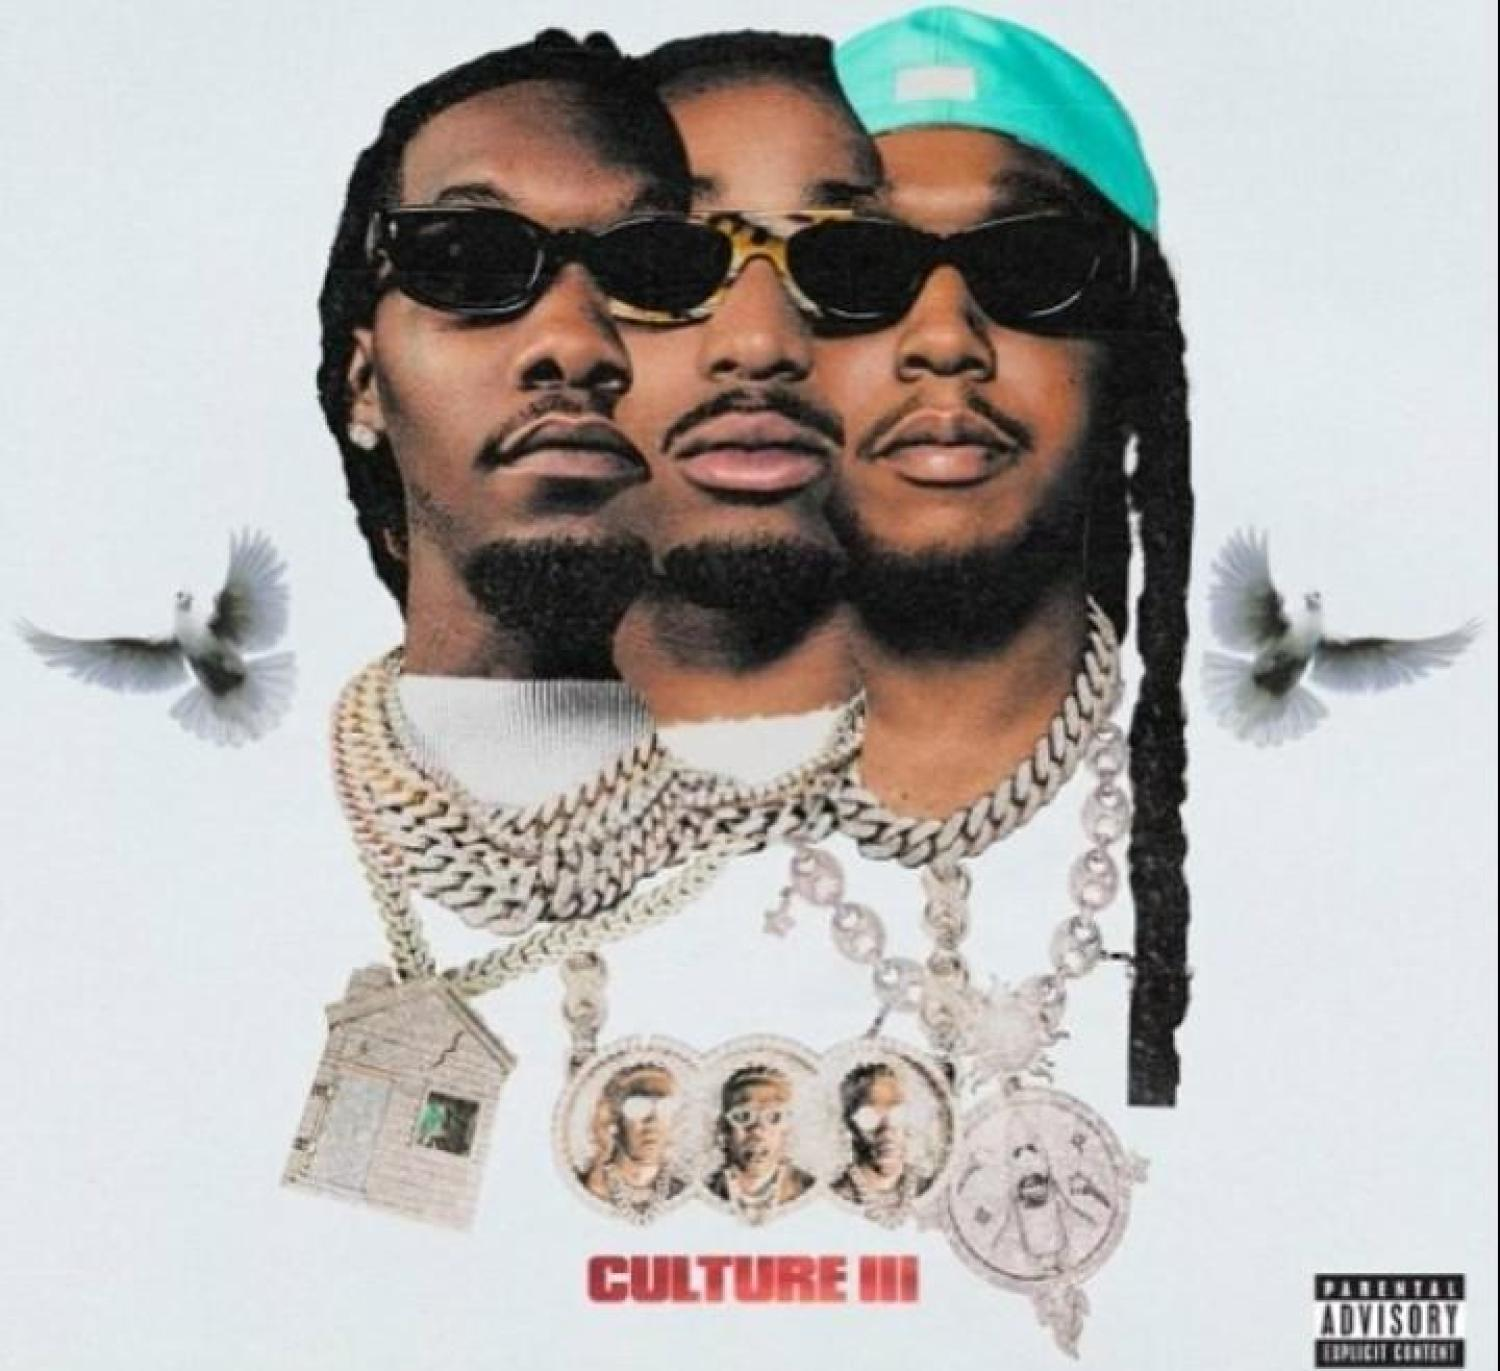 DOWNLOAD MP3: Migos ft. Justin Bieber – What You See AUDIO 320kbps